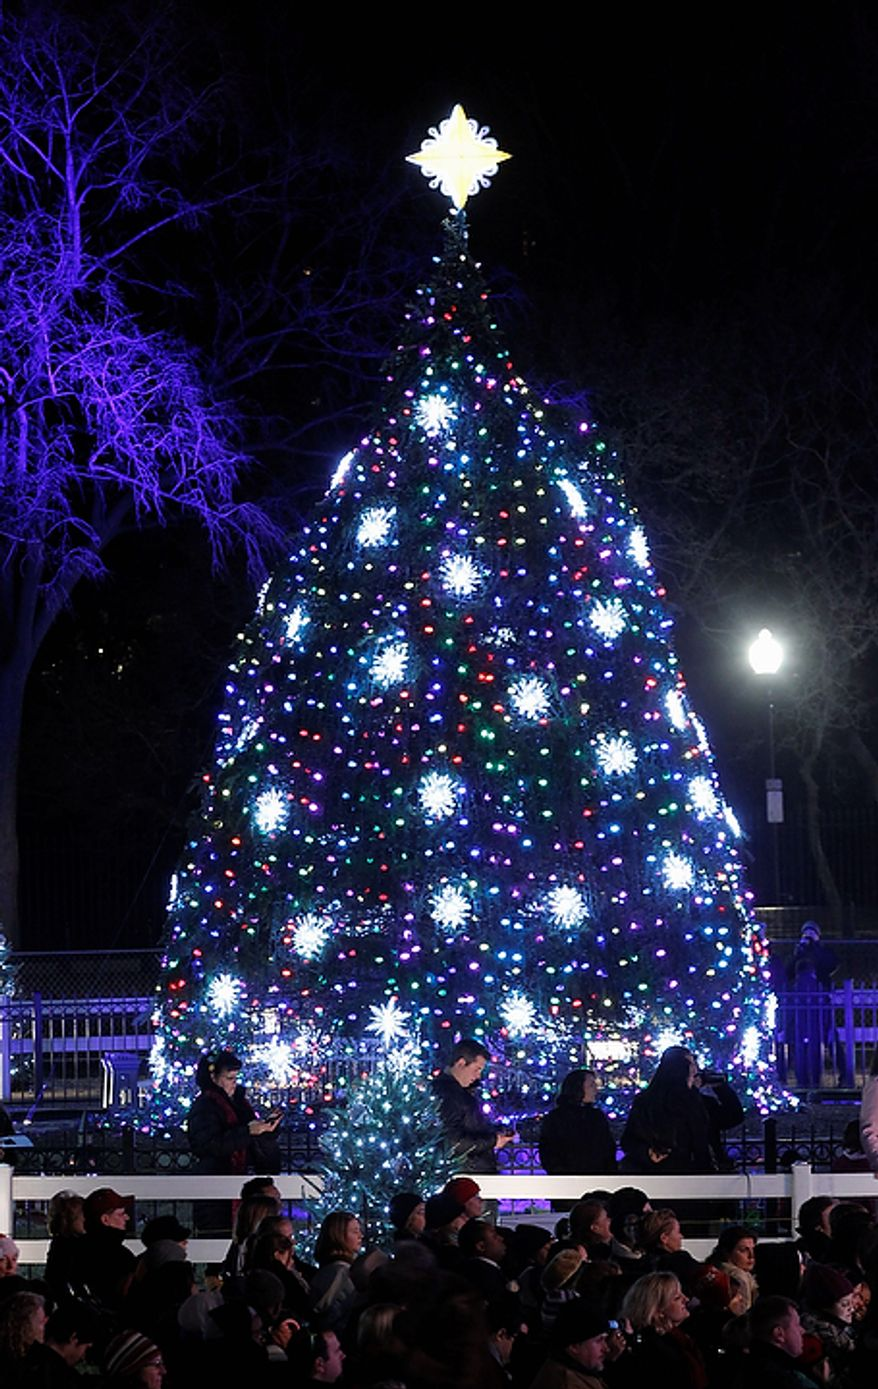 The National Christmas Tree is pictured after it was lit by President Barack Obama, first lady Michelle Obama, and daughters Malia and Sasha Obama at the Ellipse across from the White House in Washington, Thursday, Dec., 1, 2011. (AP Photo/Pablo Martinez Monsivais)